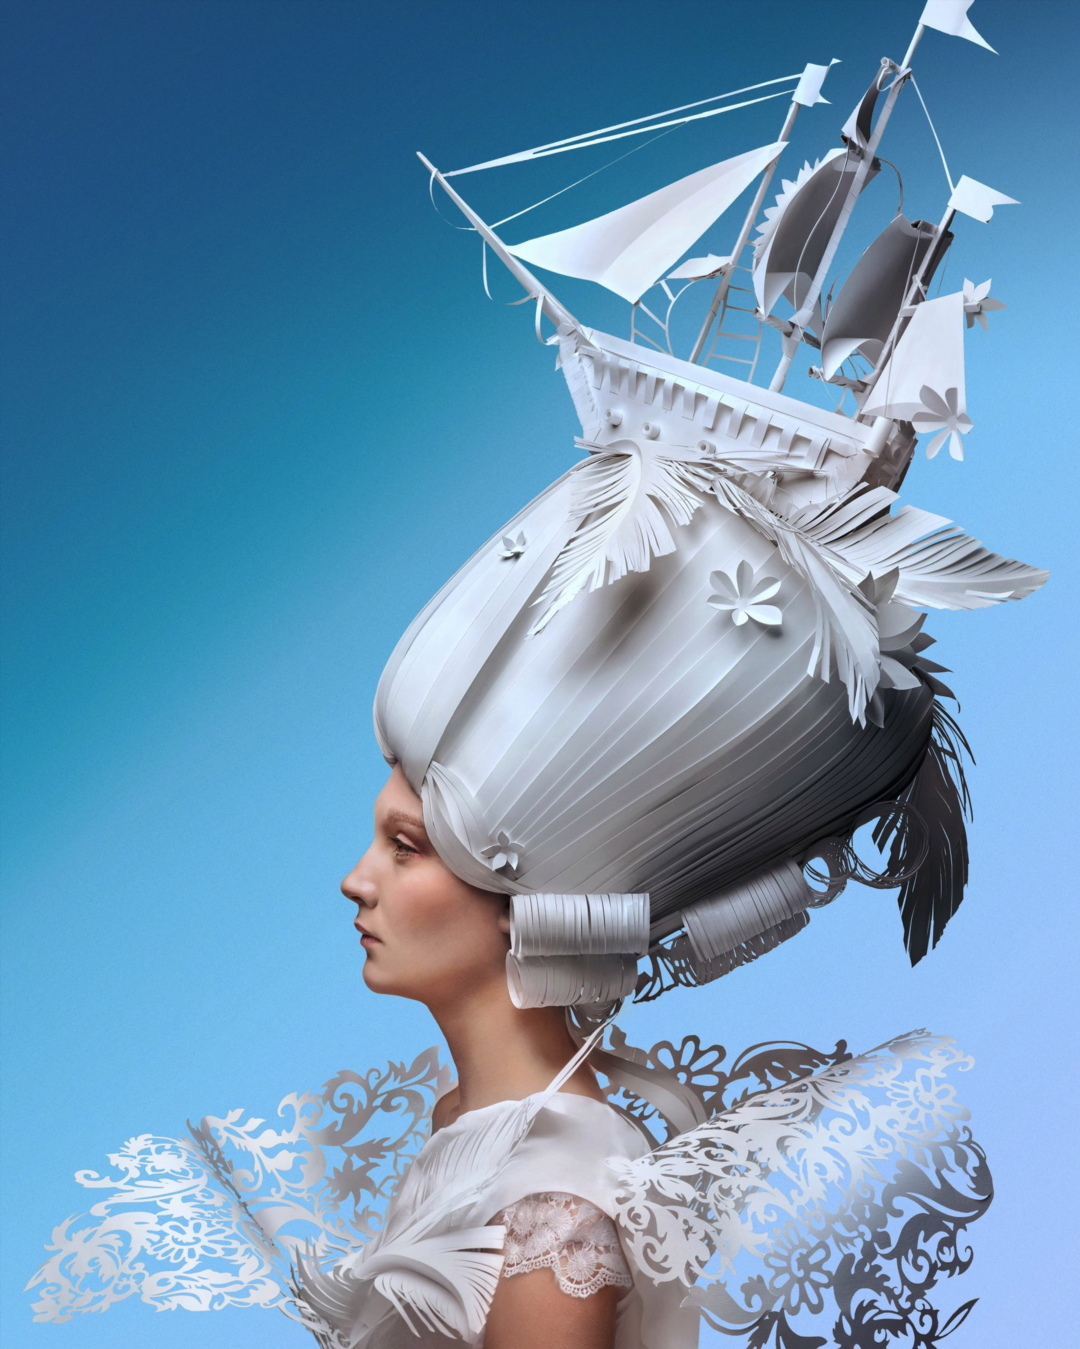 Extravagant Baroque Paper Wigs Adorned with Everyday Objects - Ship Profile